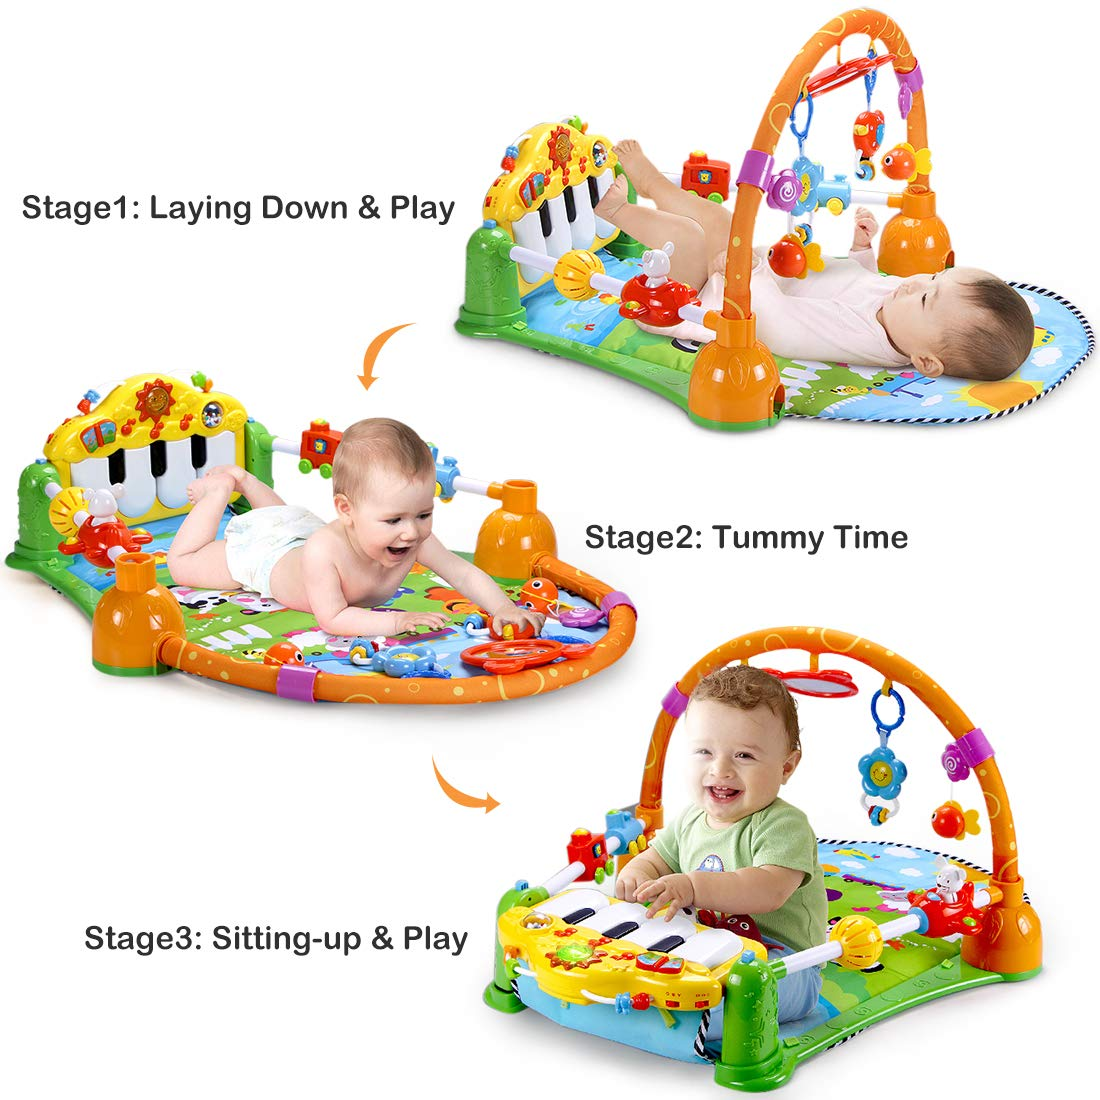 Forstart Kick and Play Piano Play Gym Night Moon Stars Light Projector Large Activity Play Mat Newborn for Baby 1-18 Month Sit Lay Down Infant Tummy Time Sensory Development Educational Playtime